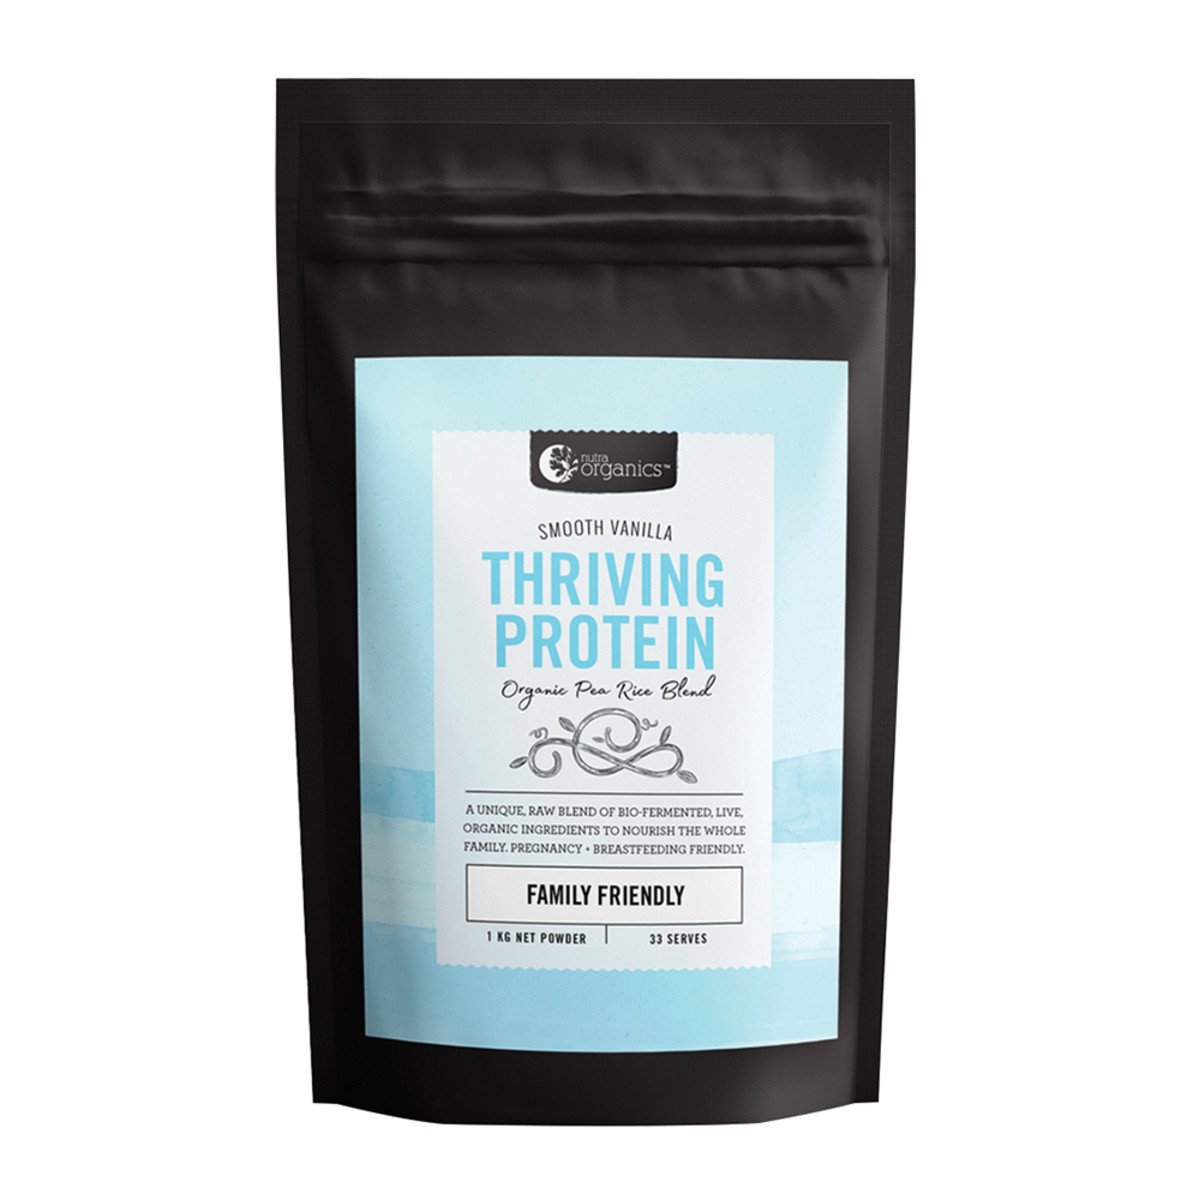 NUTRA ORGANICS THRIVING PEA PROTEIN FAMILY FRIENDLY SMOOTH VANILLA 1KG